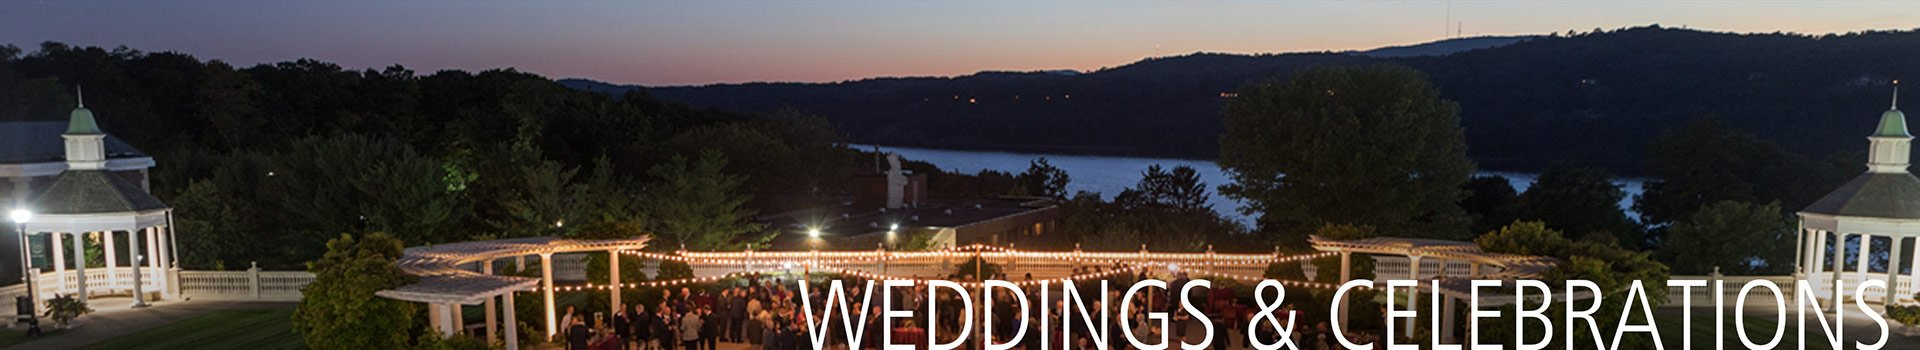 Outdoor evening wedding event in the Hudson Valley